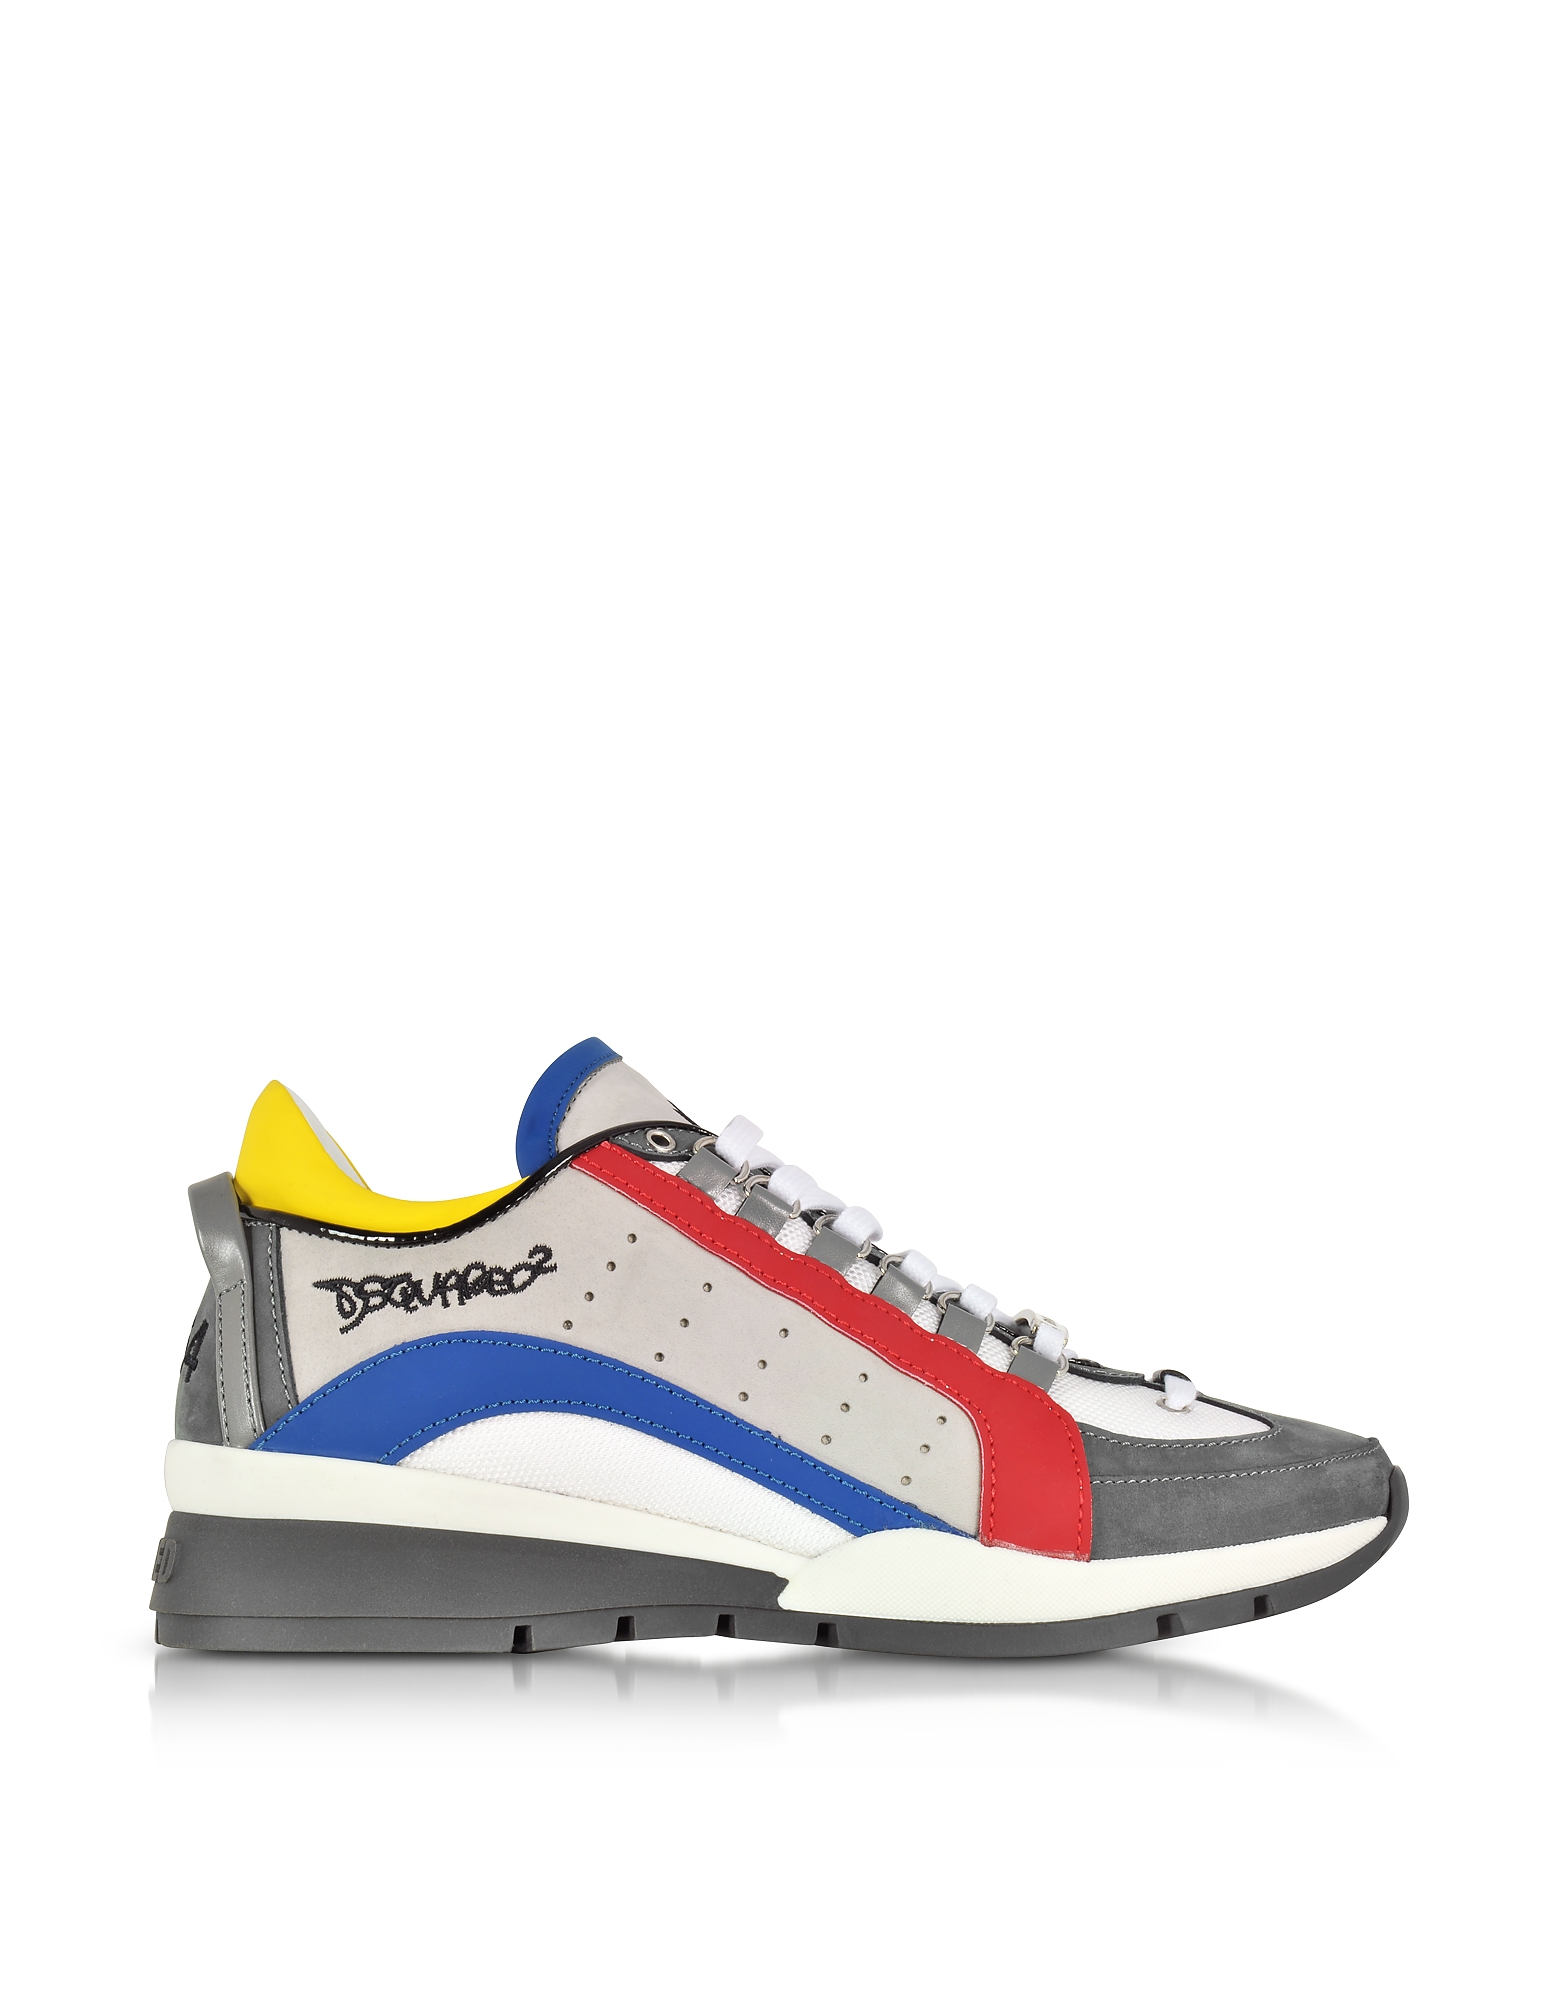 DSquared2 Shoes, Gray/Blue Suede and Nylon Men's Sneakers